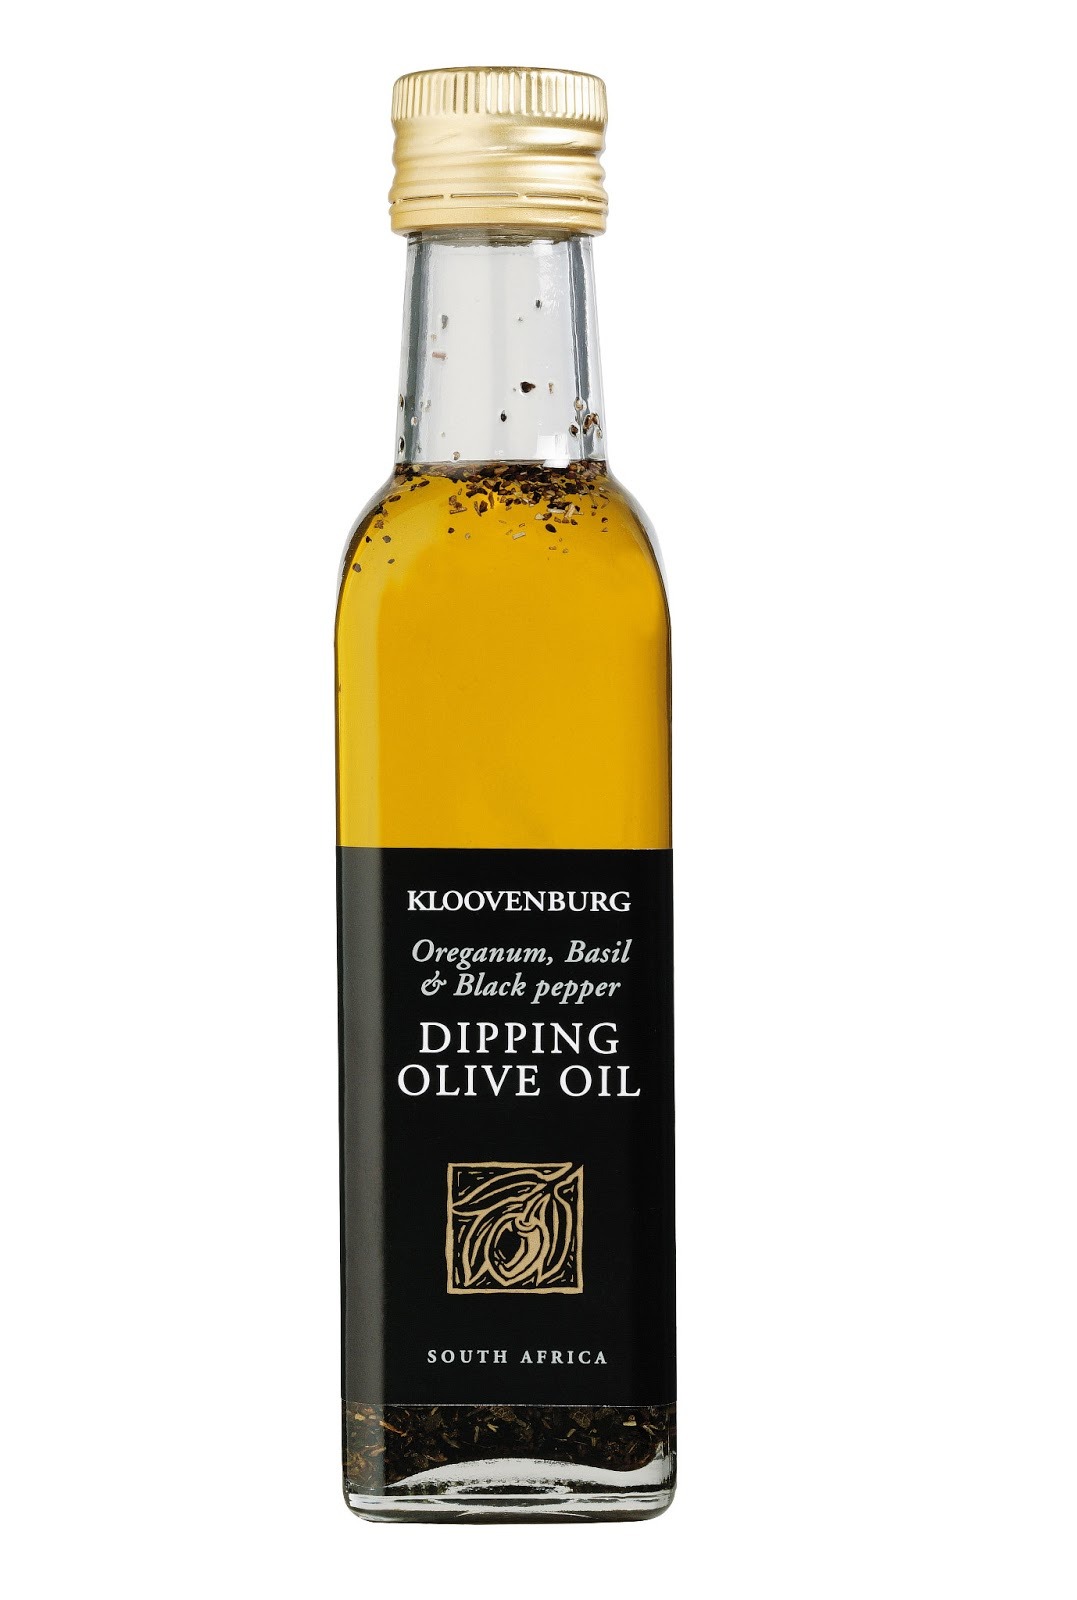 oreganum basil black pepper dipping olive oil extra virgin olive